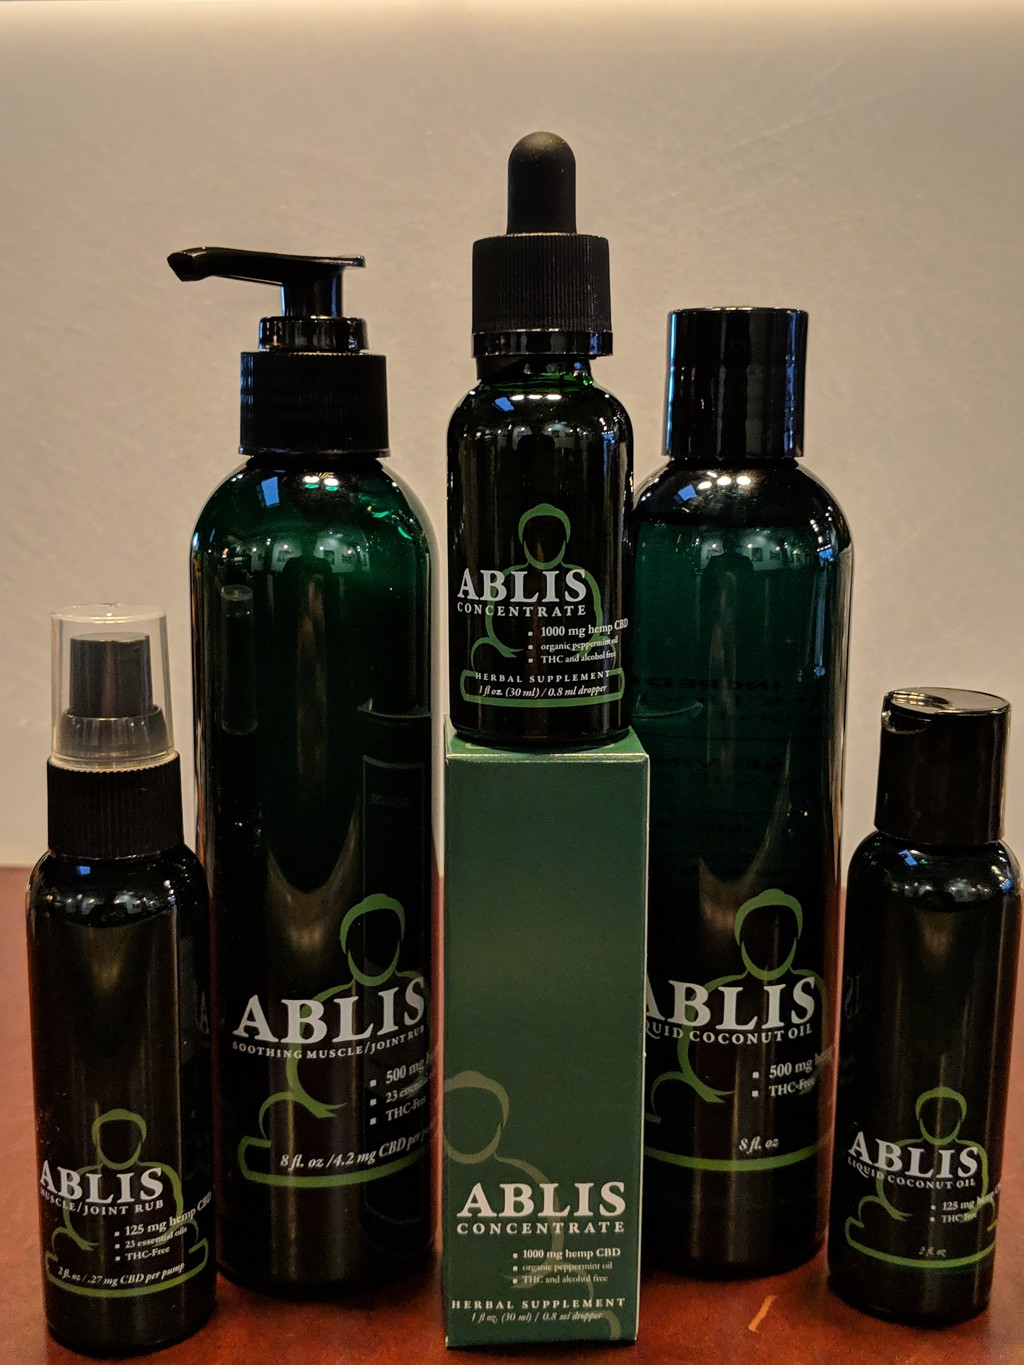 We proudly use and sell Ablis CBD products.